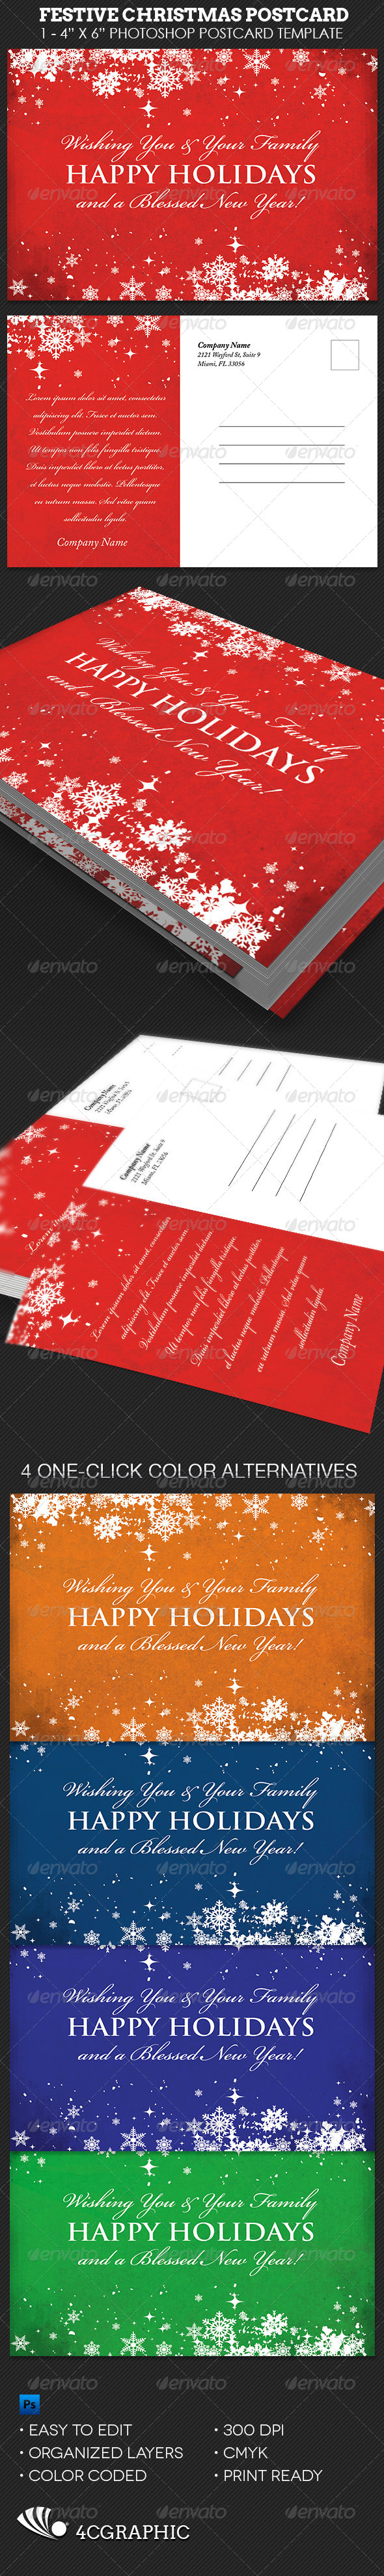 Festive Christmas Postcard Template - Events Flyers